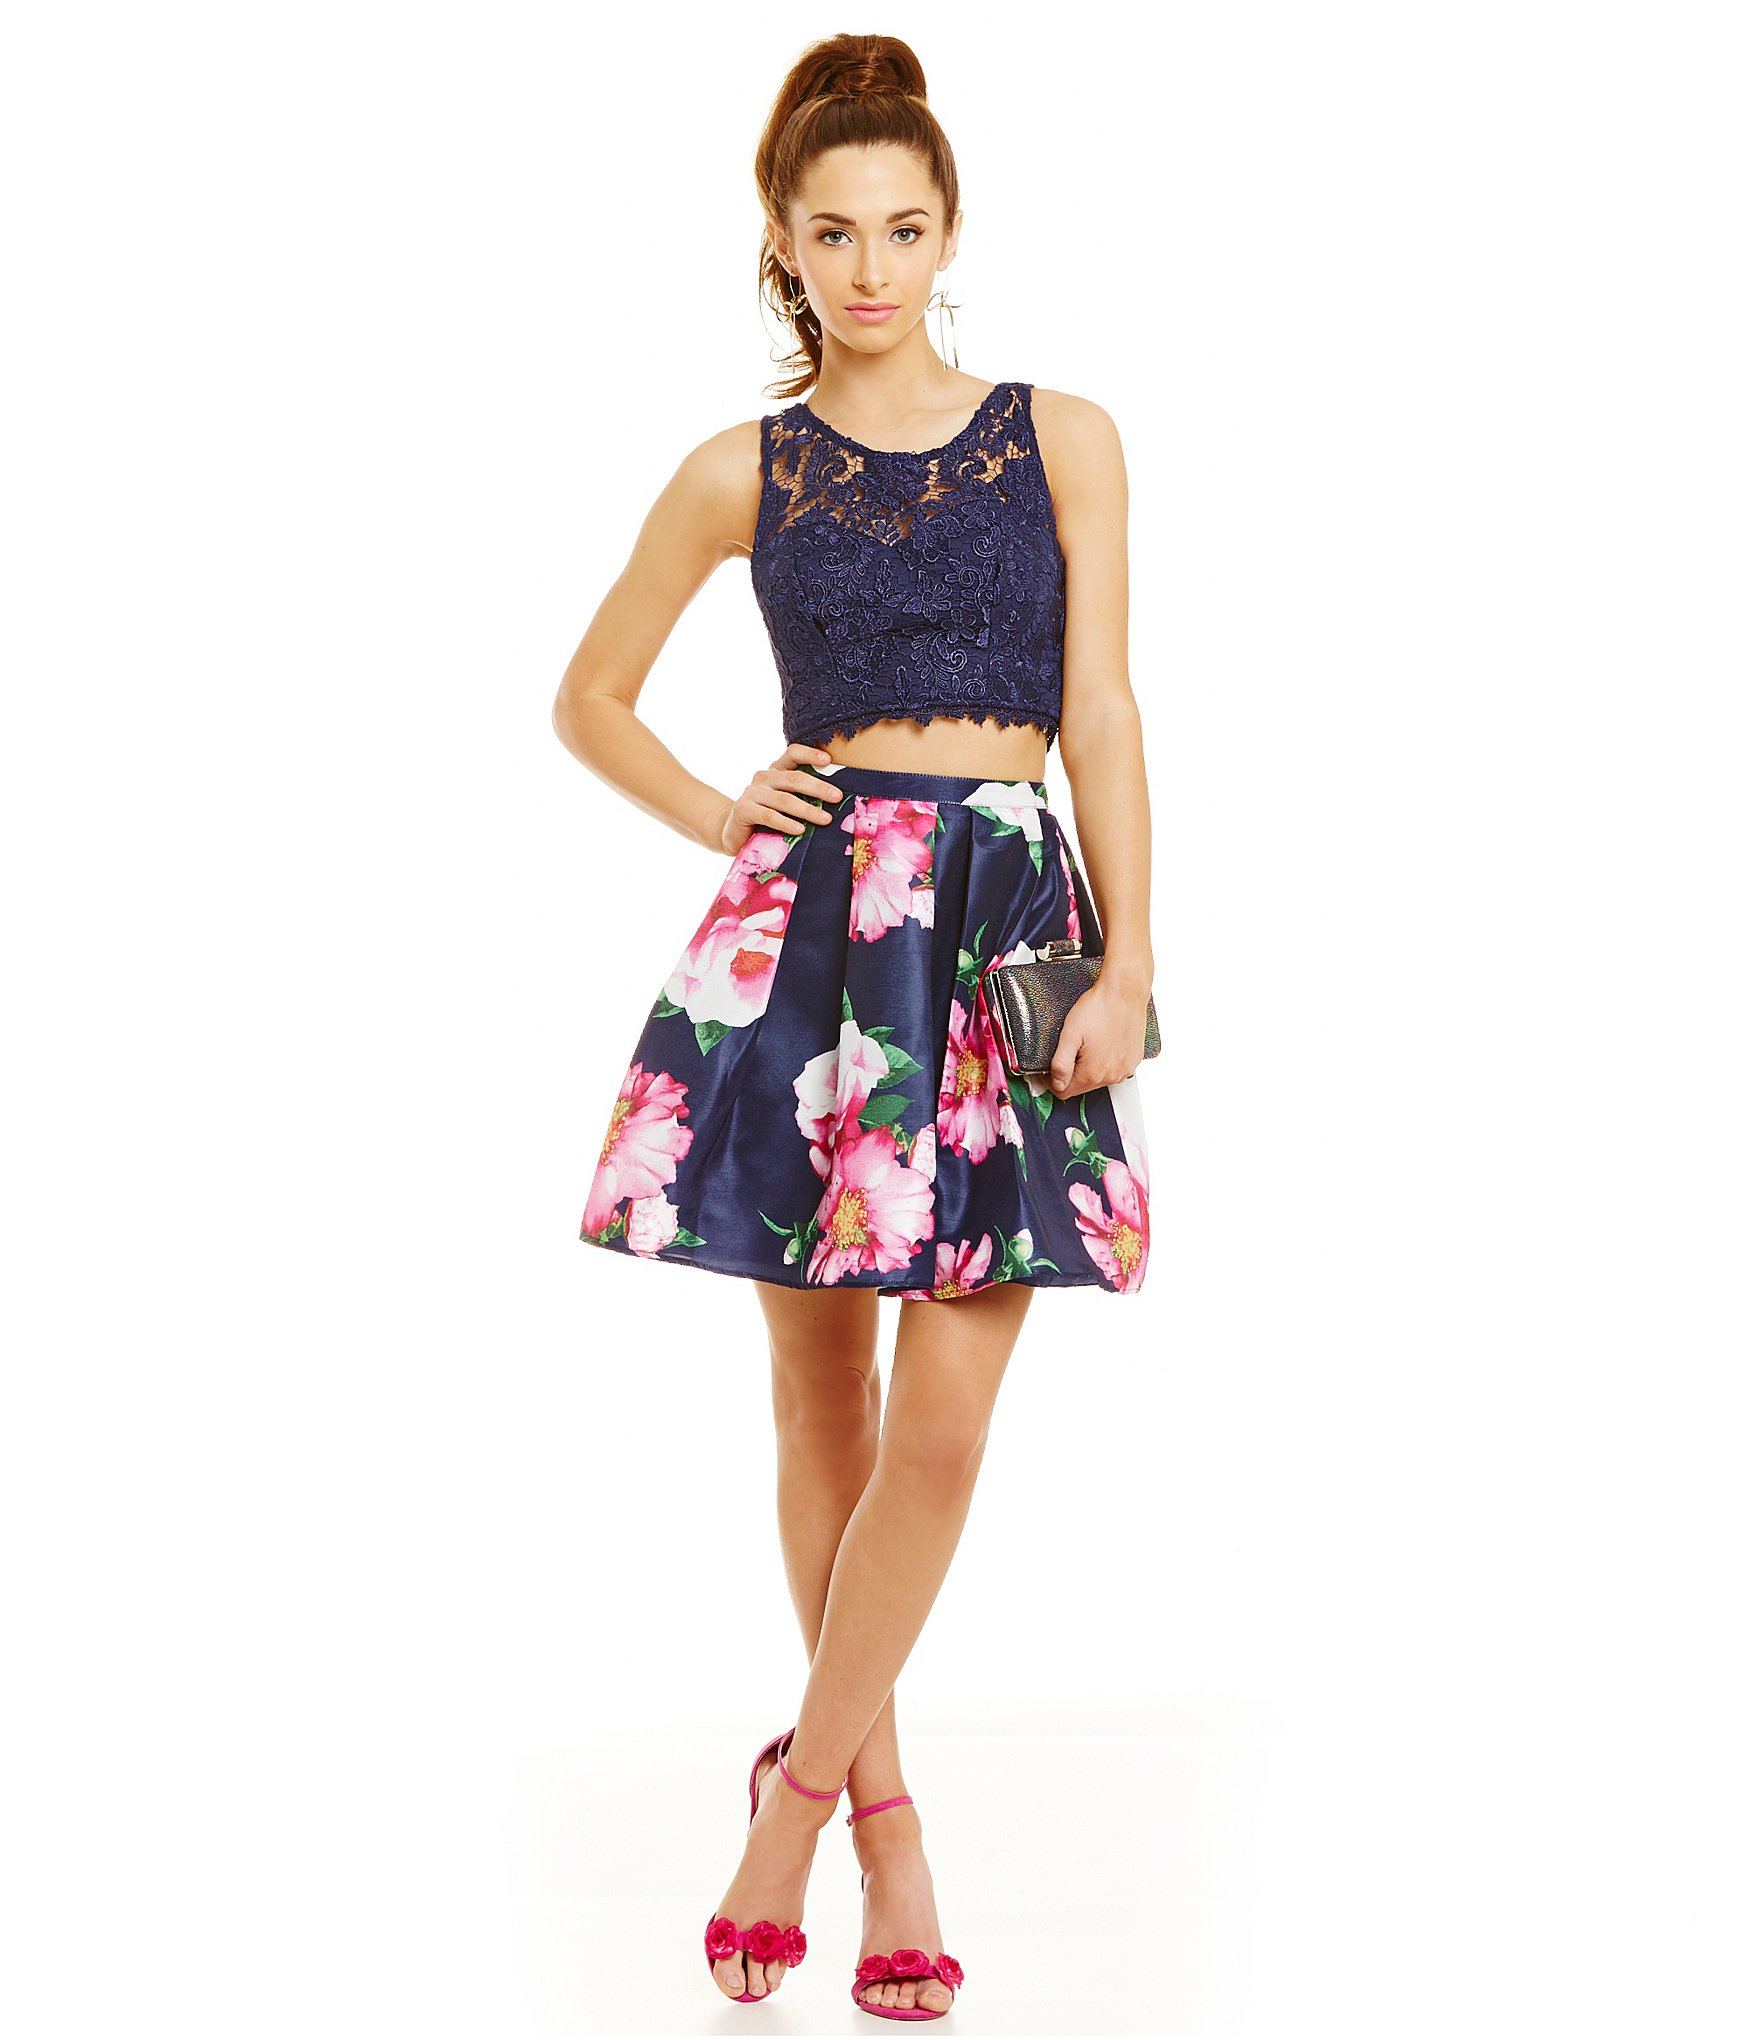 Sequin hearts Lace To Floral Skirt Crop-top Two-piece Dress - Lyst